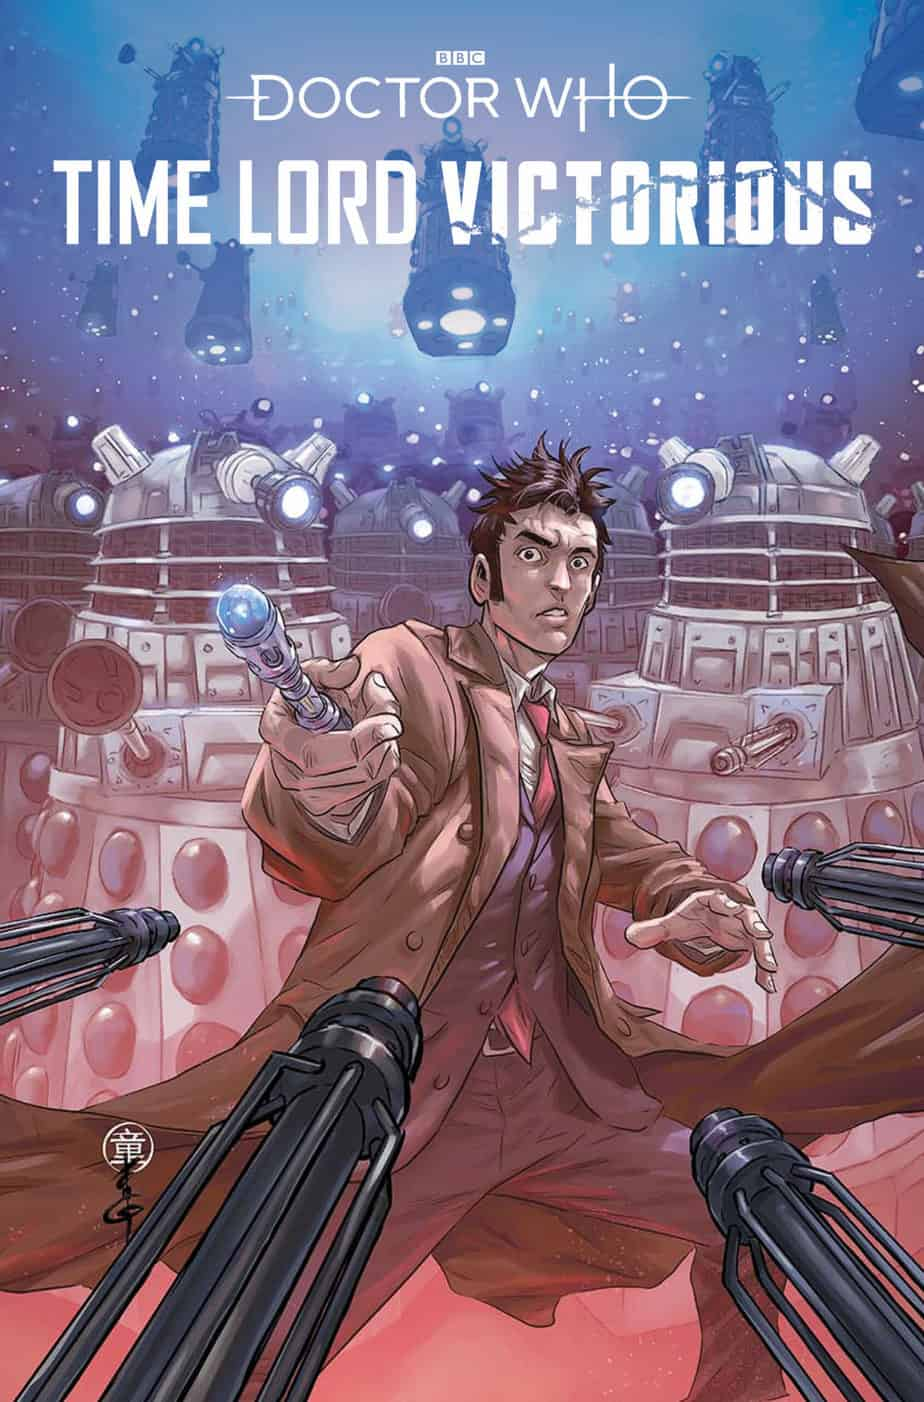 Doctor Who: Time Lord Victorious #1 - Cover C